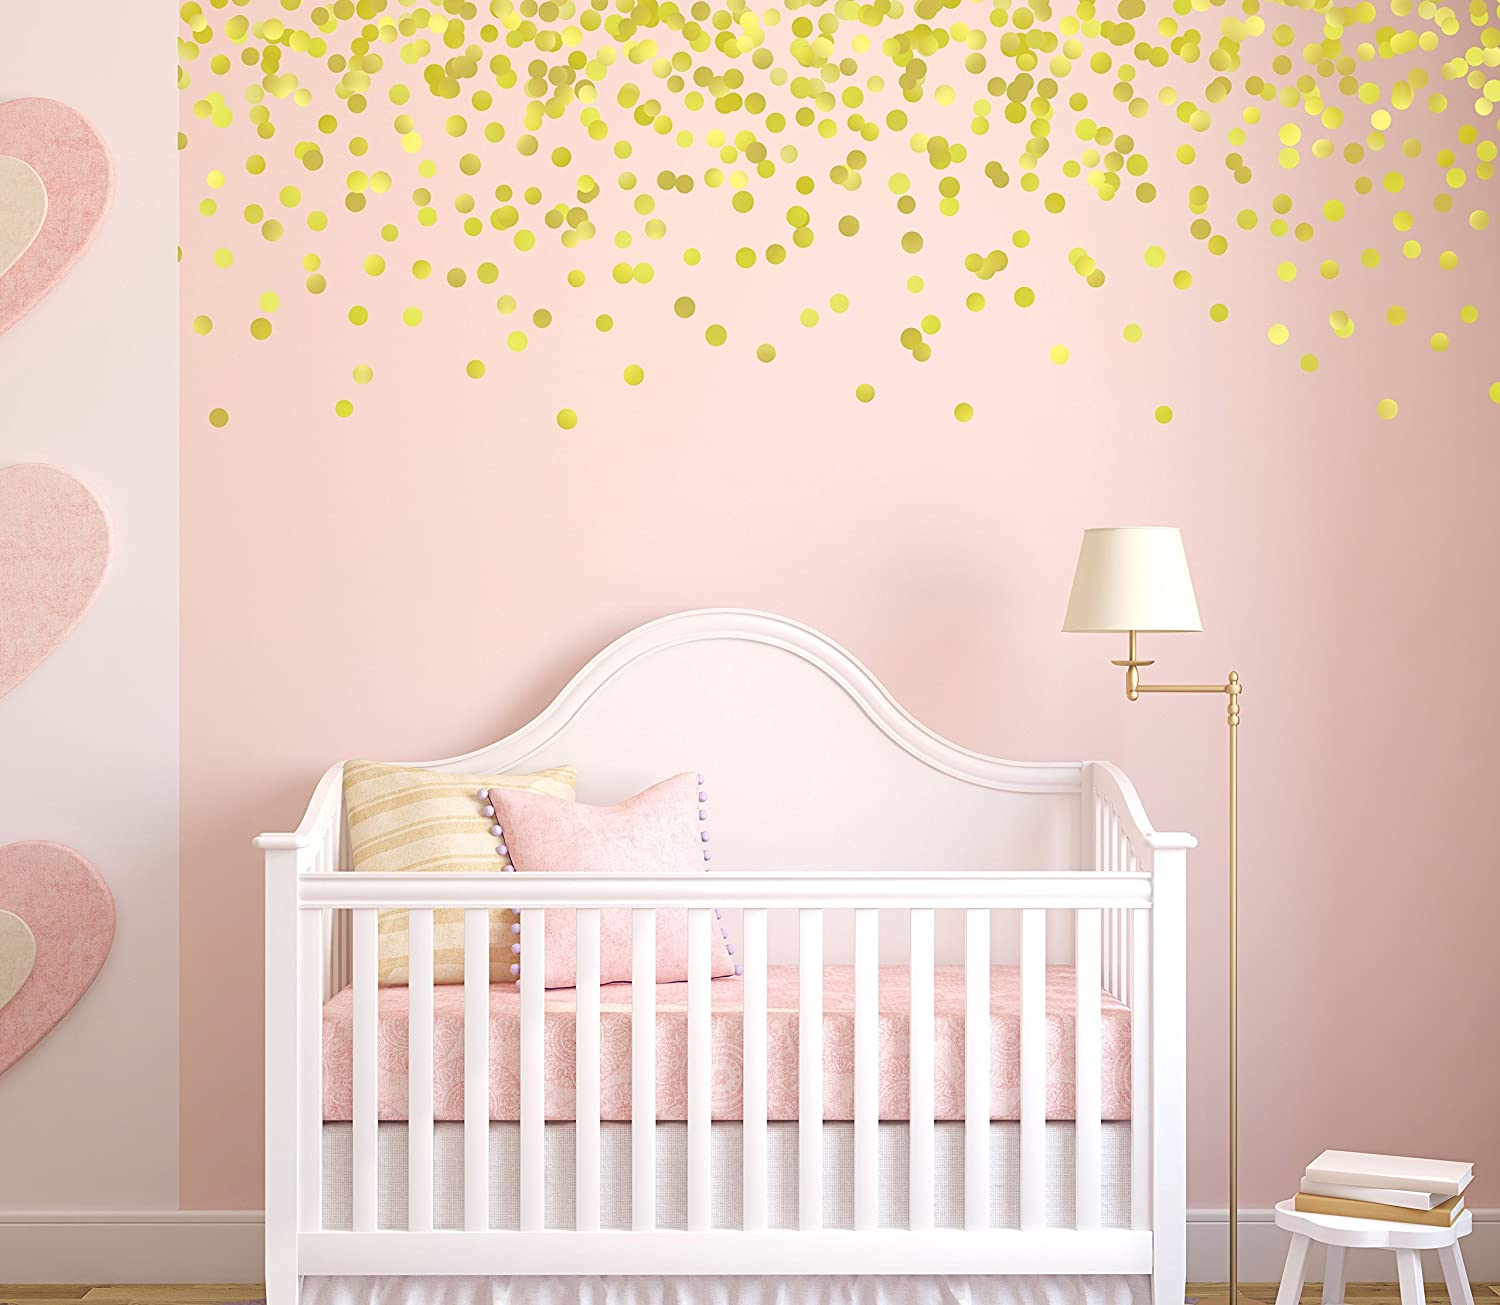 Amazoncom Gold Polka Dot Wall Decals, Pink And Gold Nursery,